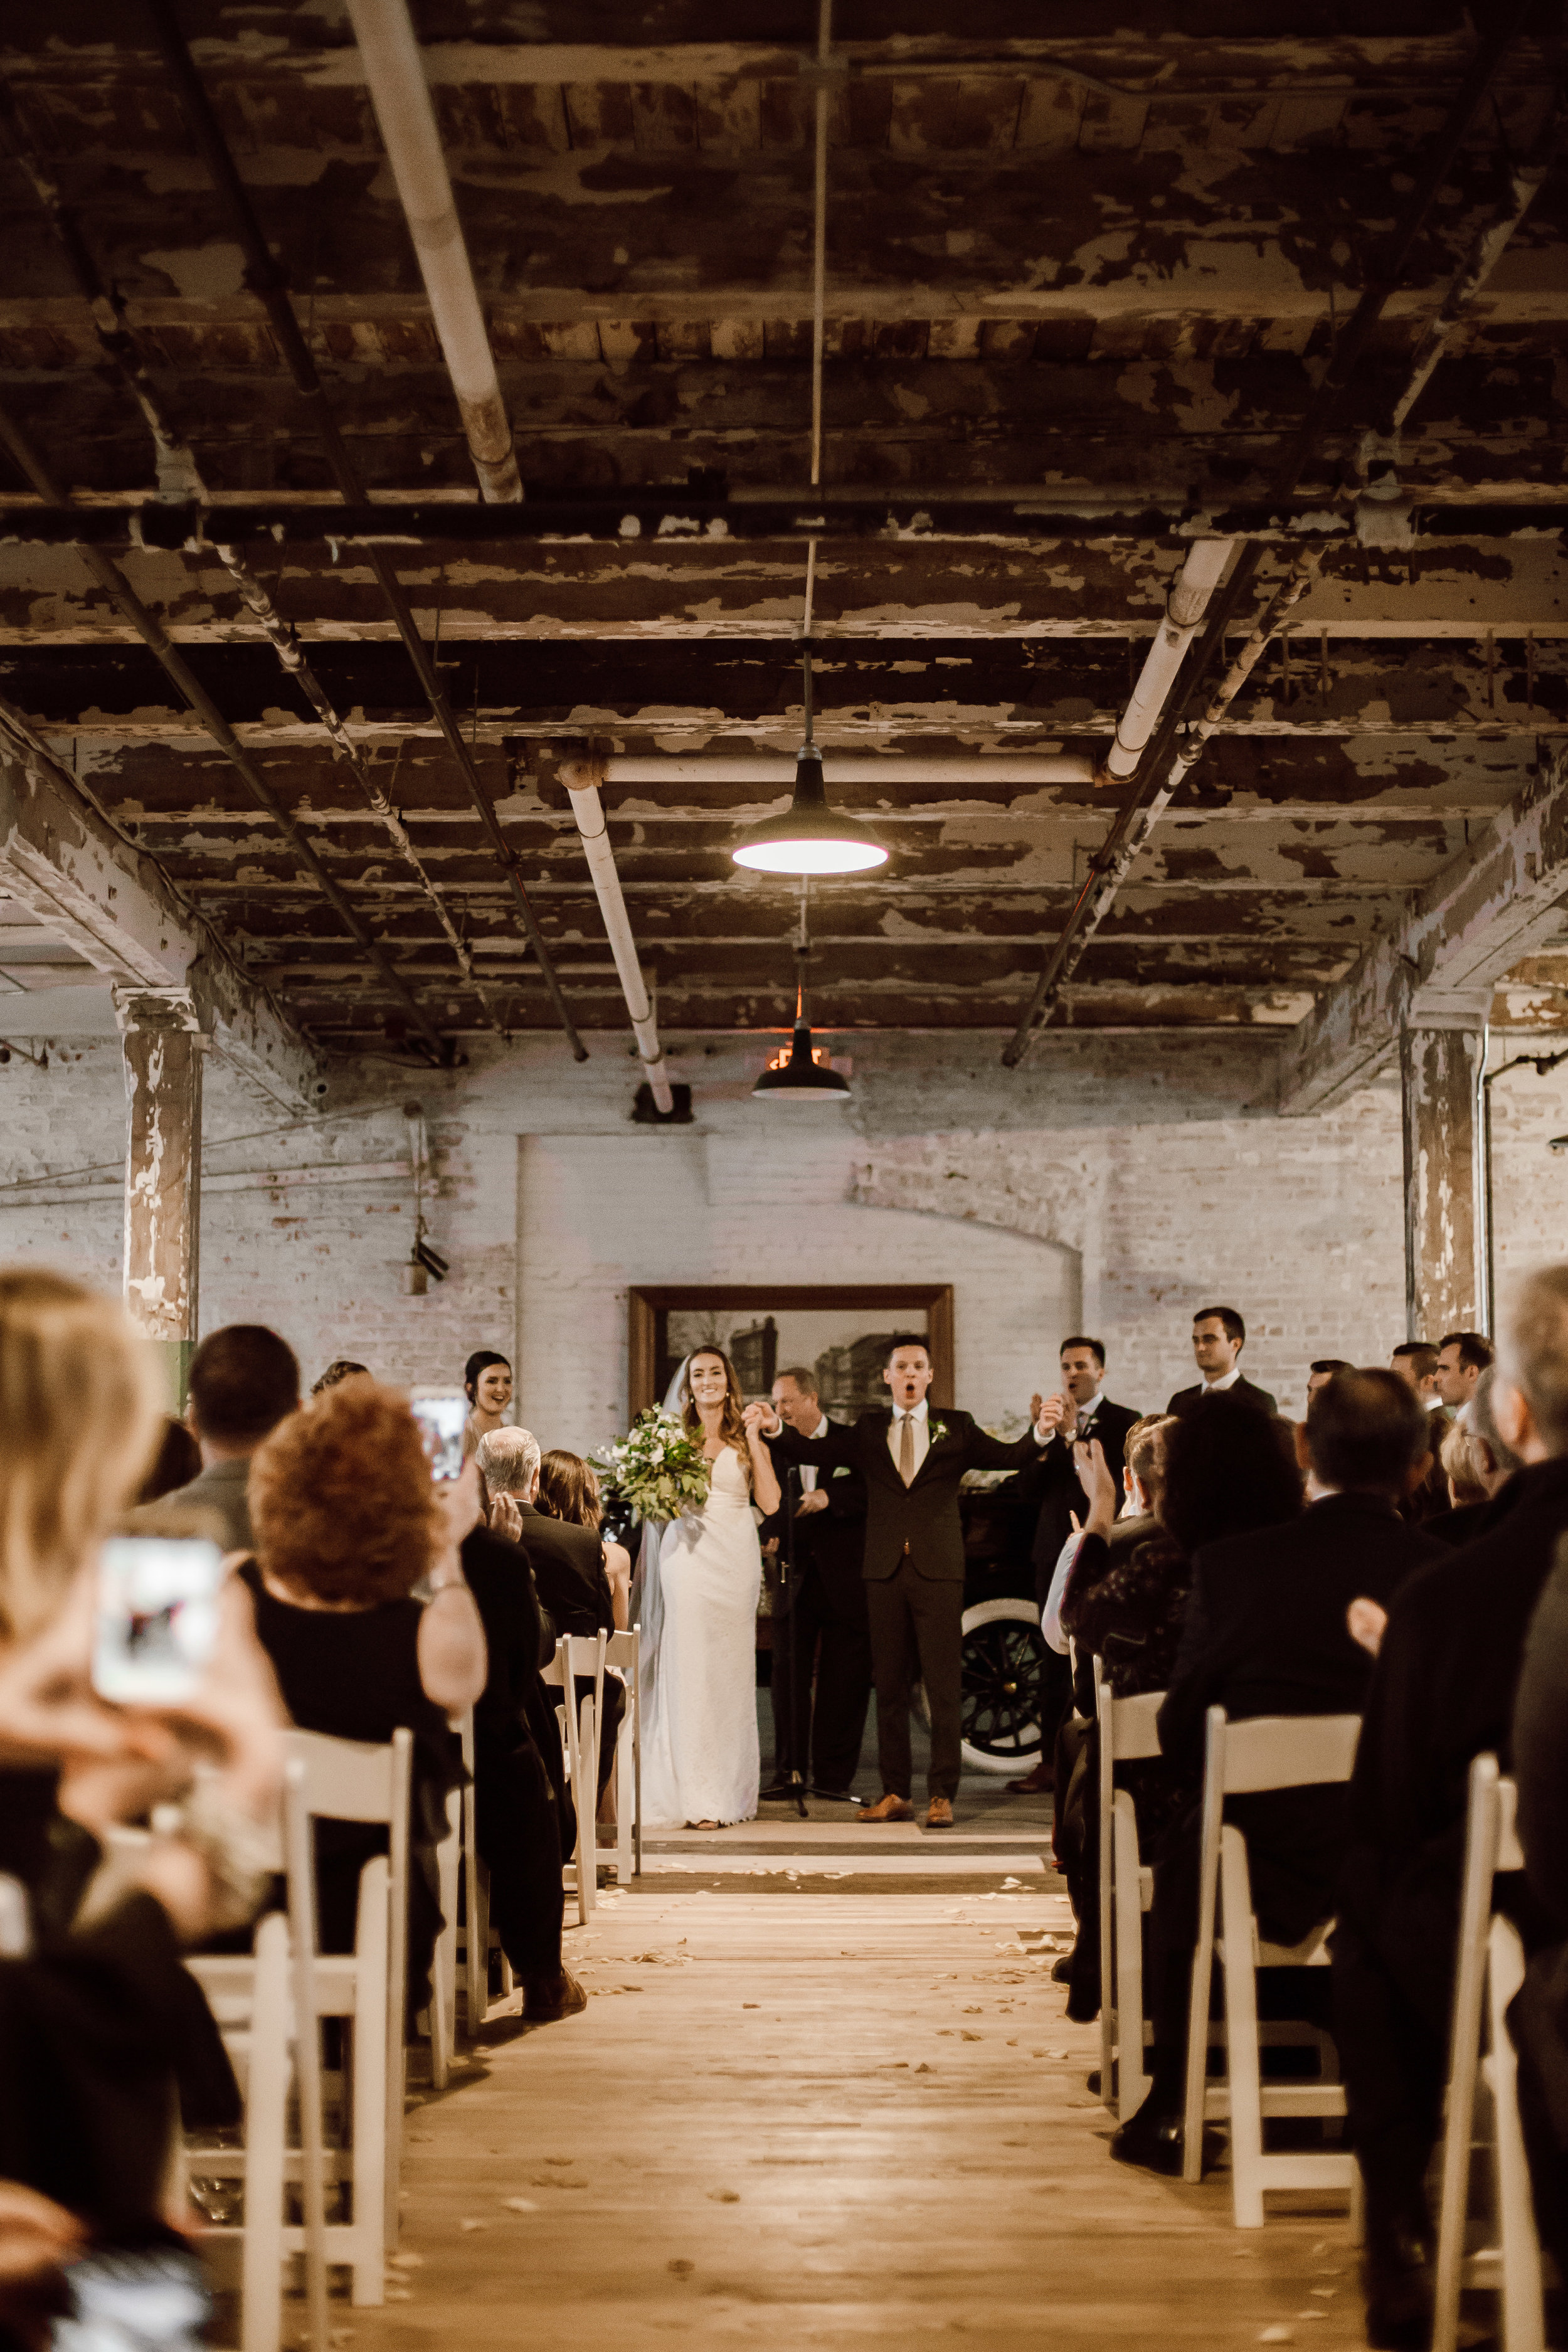 Katie_Vonasek_Photography_Ford_Piquette_Plant_Wedding_Detroit76.JPG